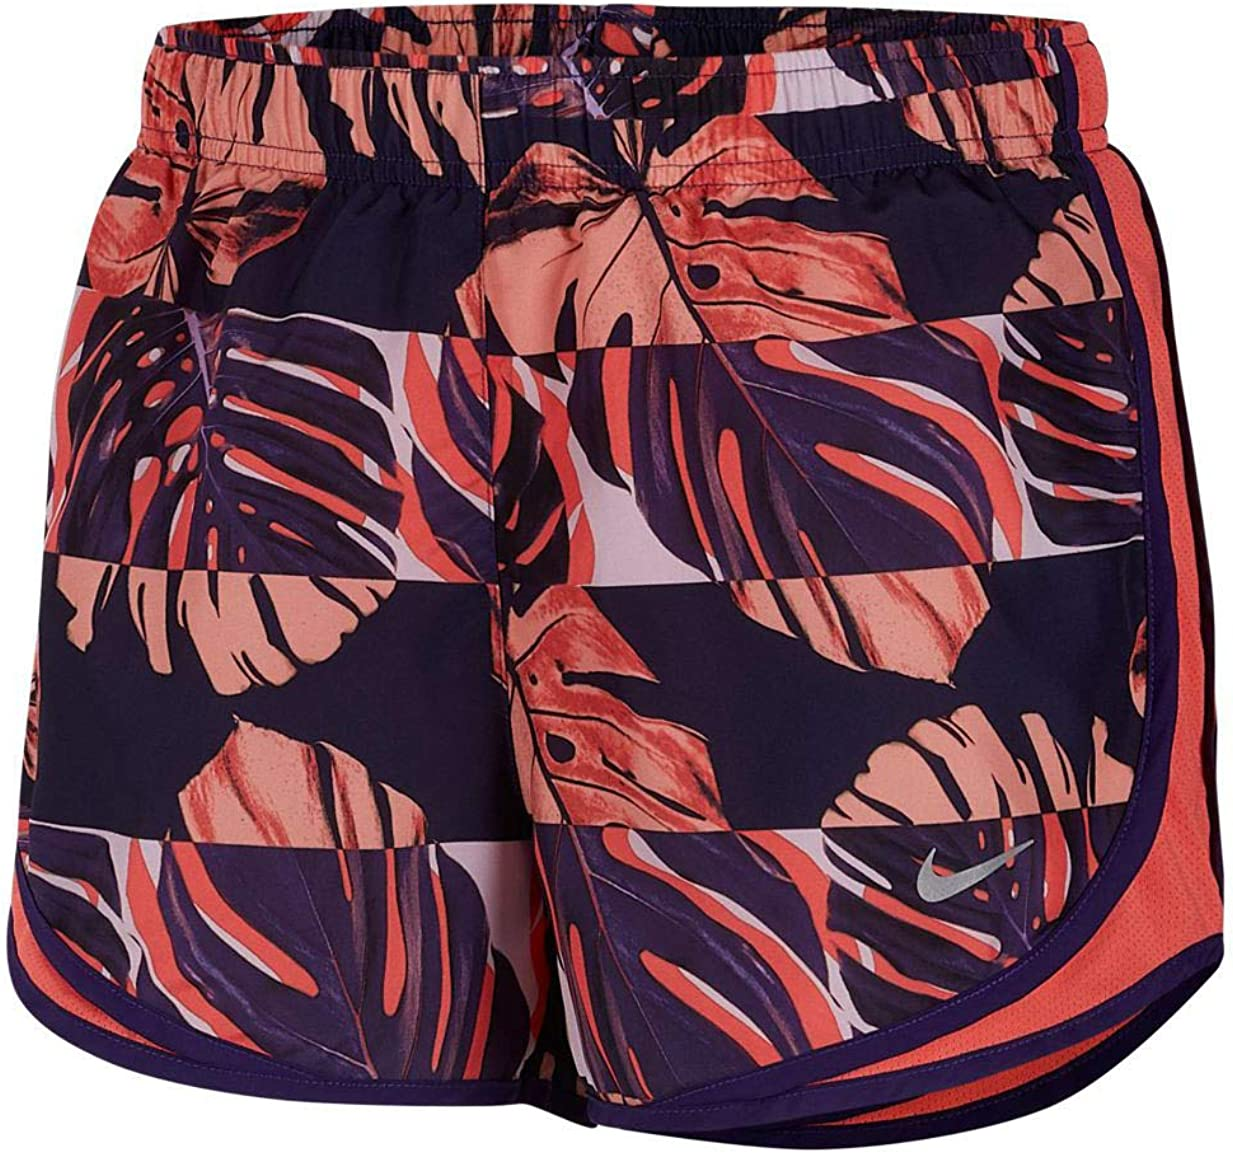 Nike Max 48% OFF Women's Tempo Direct stock discount Shorts Printed Running